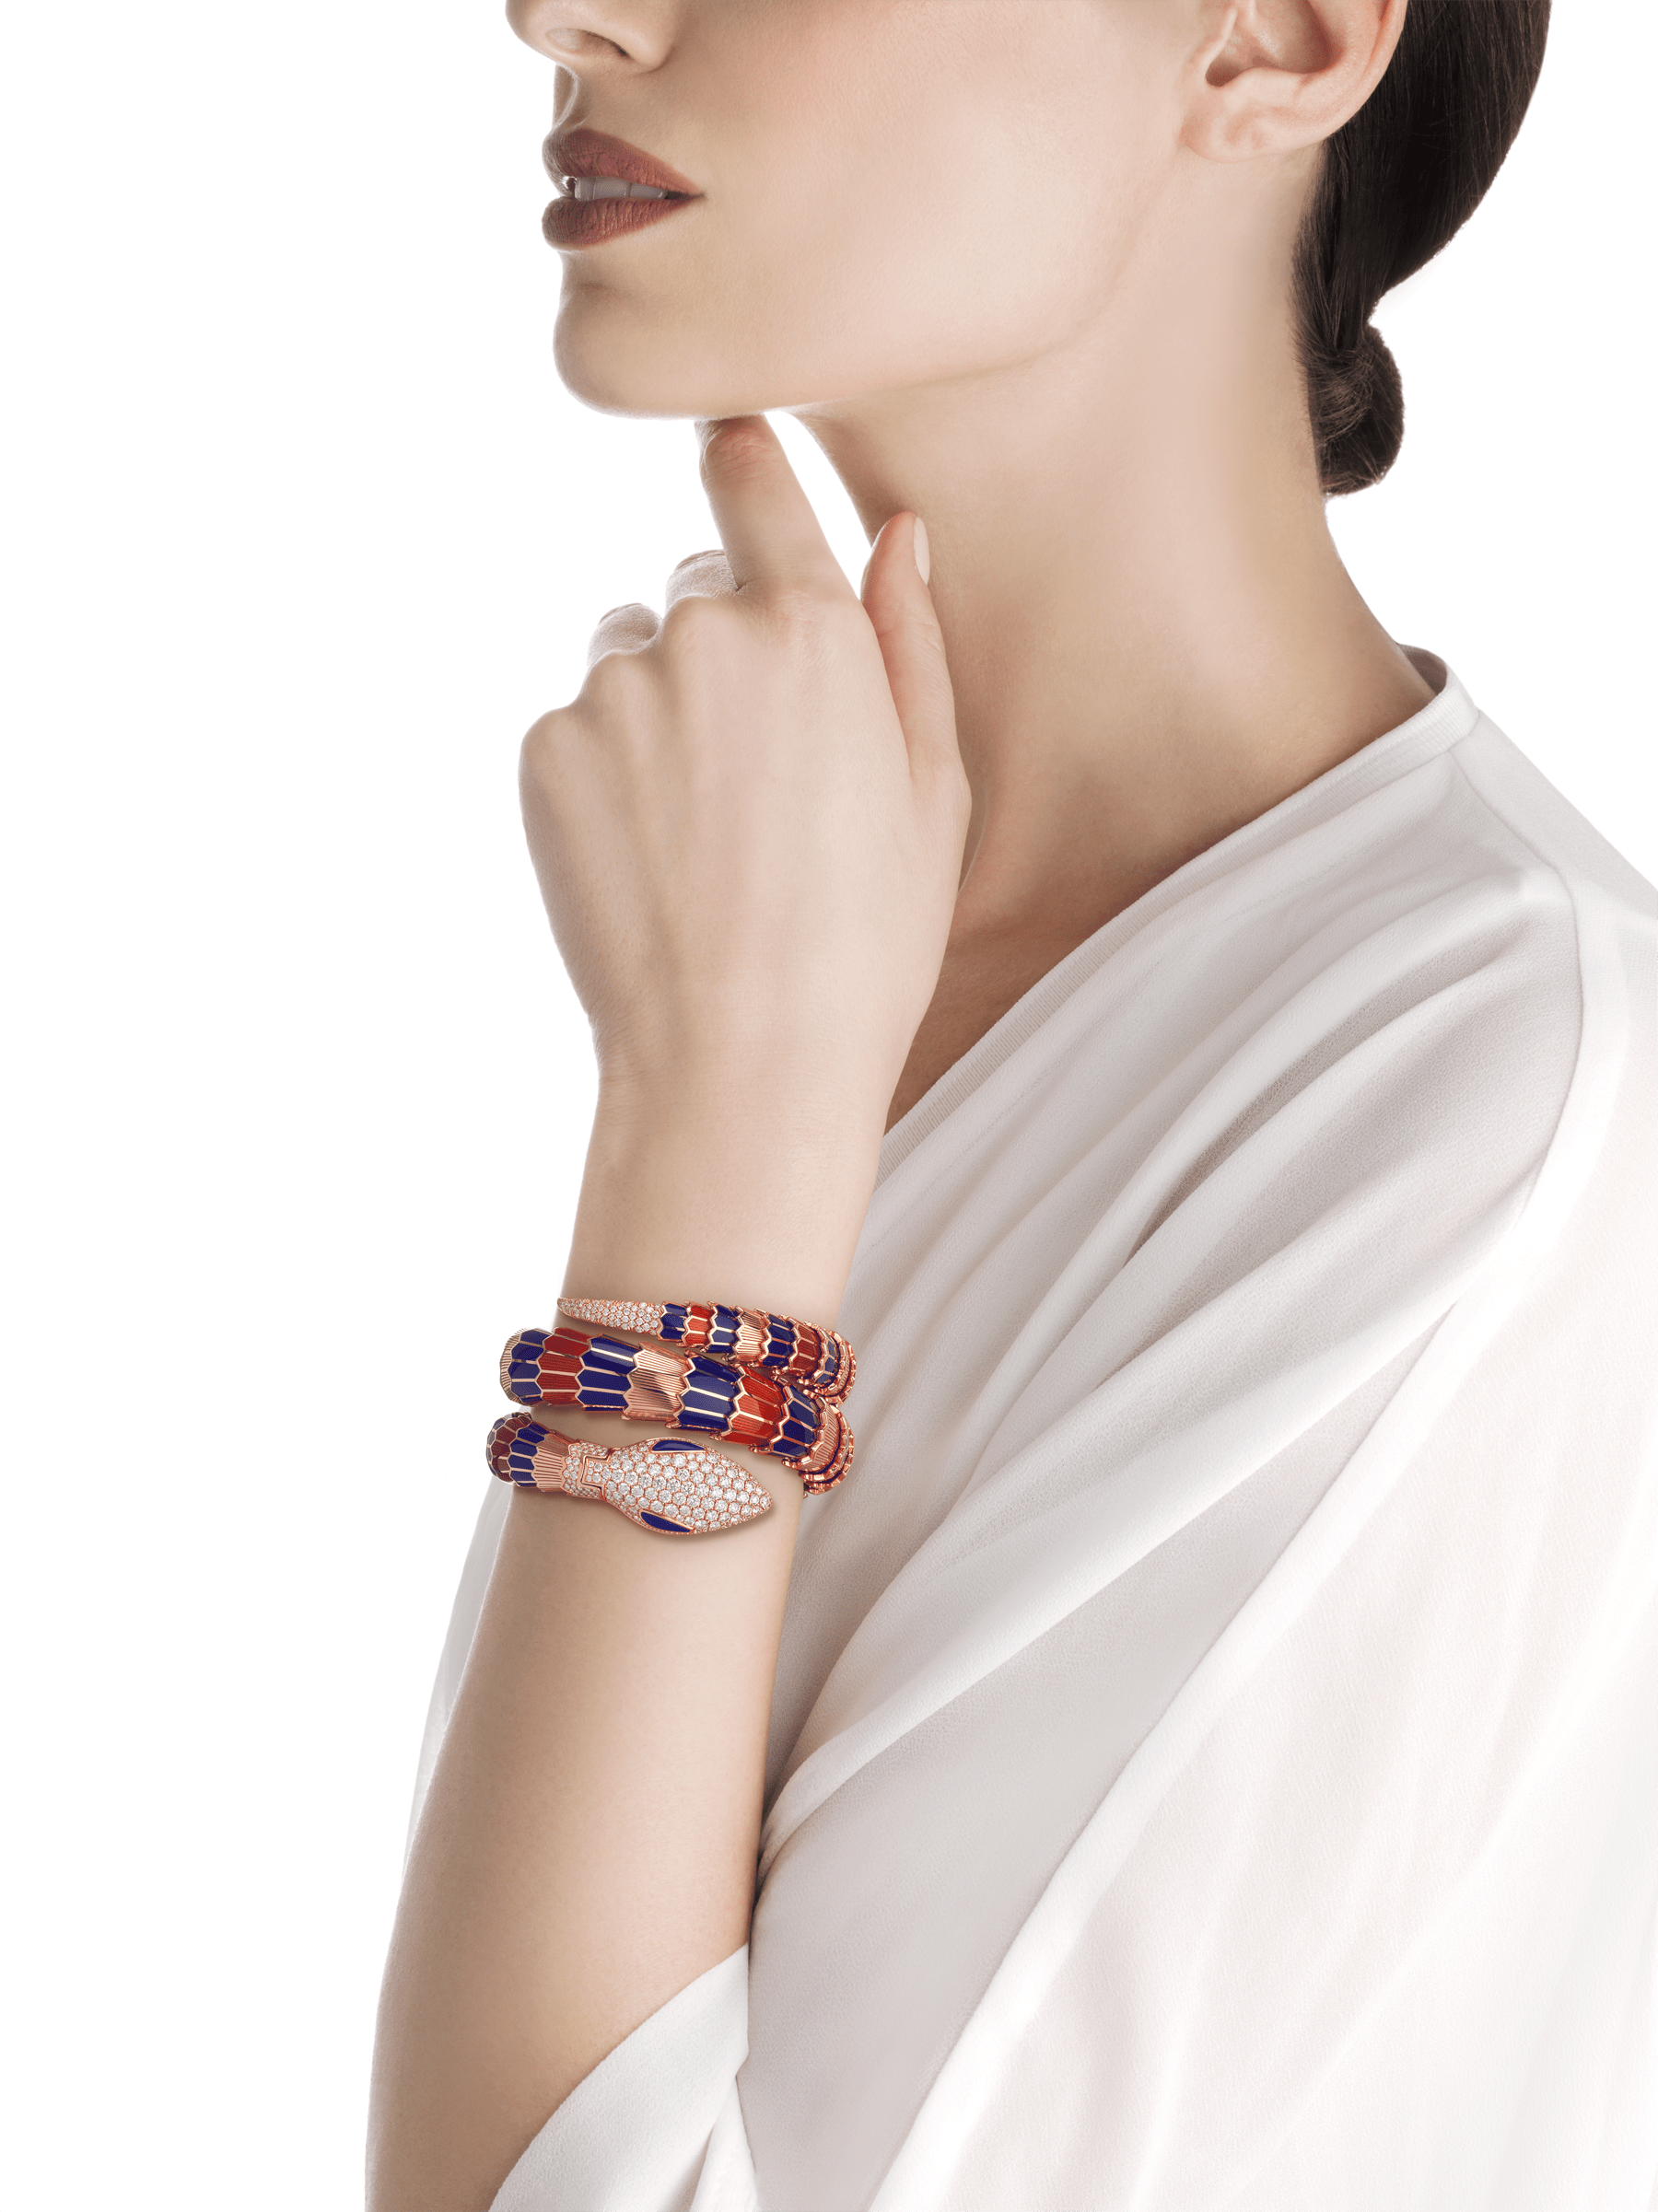 Serpenti Secret Watch with 18 kt rose gold head set with pavé diamonds and lapis lazuli eyes, 18 kt rose gold case, 18 kt rose gold dial set with brilliant cut diamonds, 18 kt rose gold double spiral bracelet coated with blue and red lacquer and set with pavé diamonds. 102445 image 3